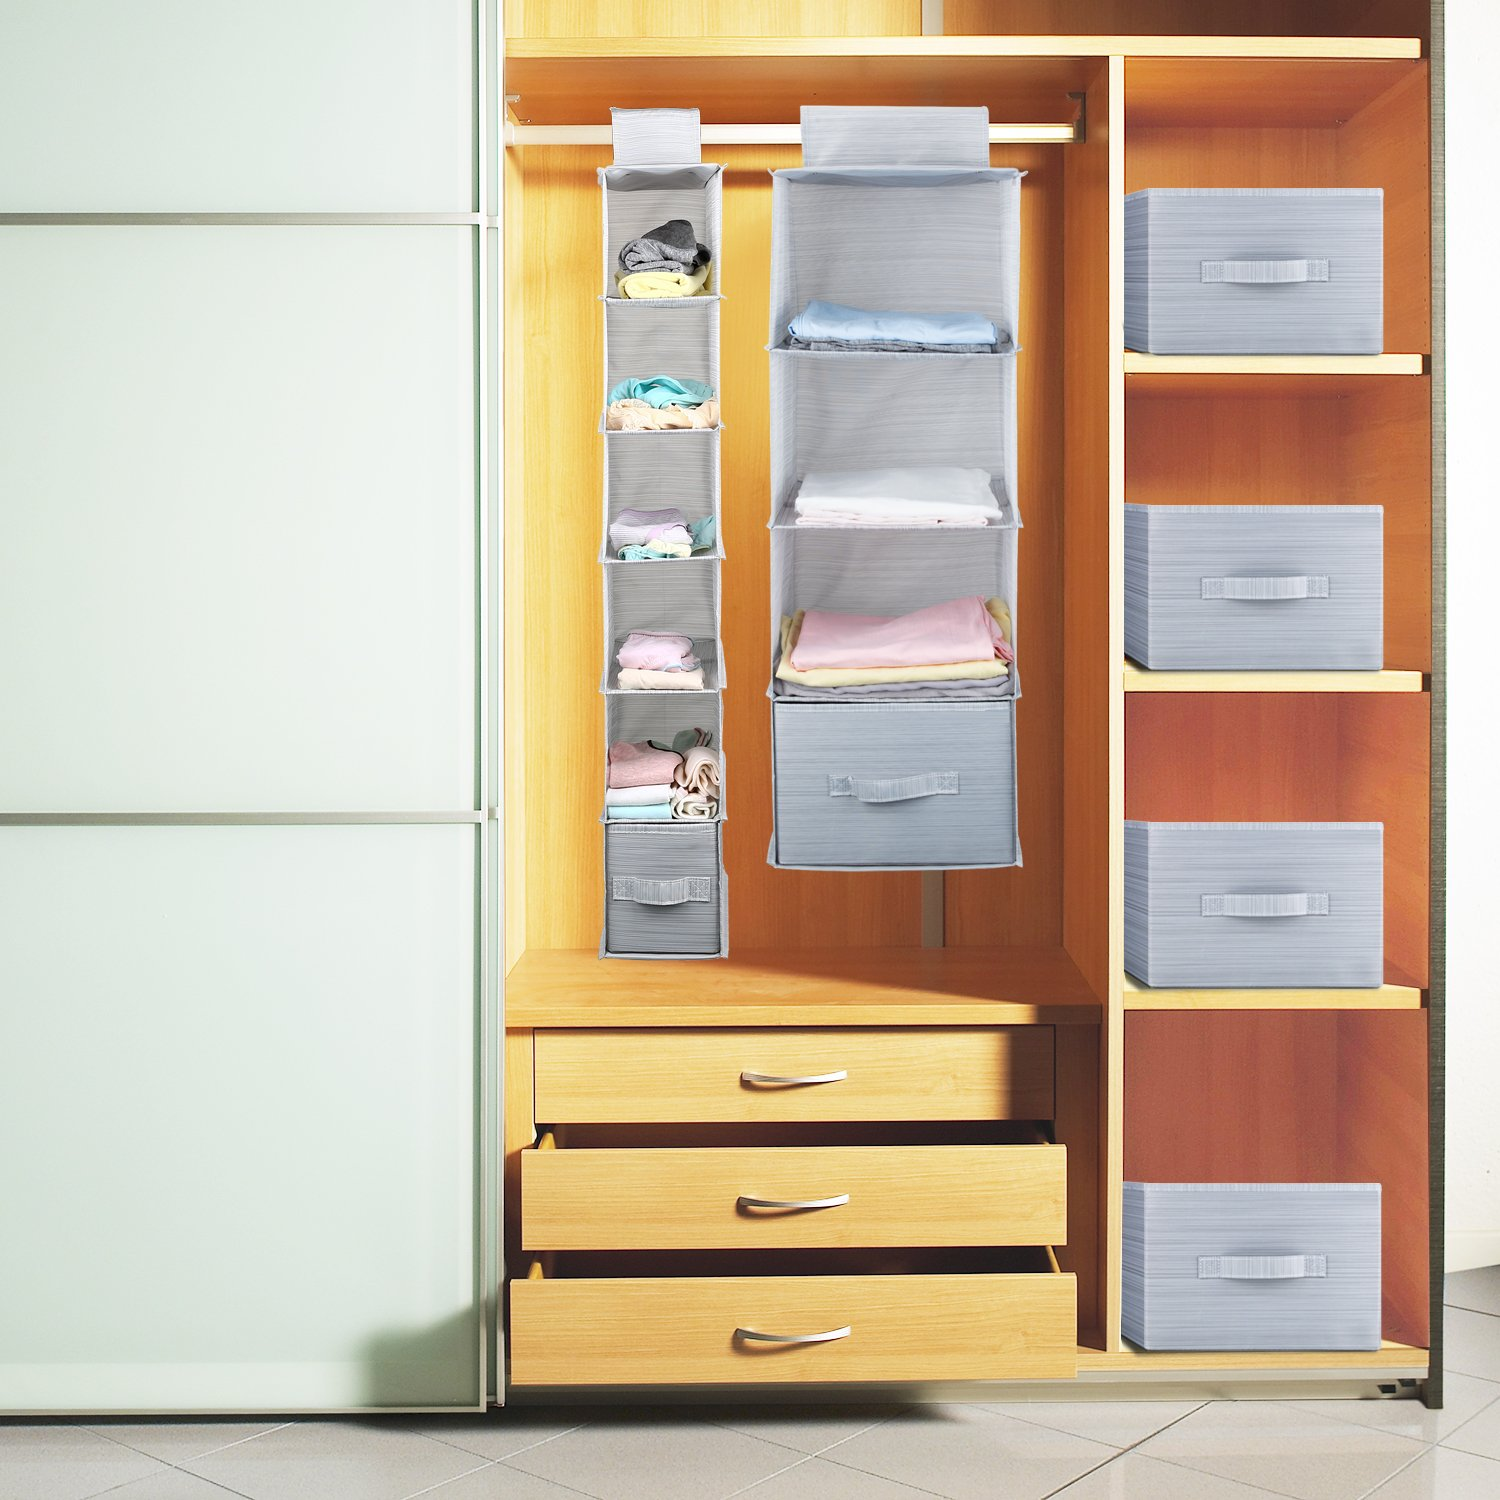 hanging size organiser your design wall walk layout system full in options with inside shelf rack organizer closet systems drawers and for of external easy shelves storage wardrobe shelving